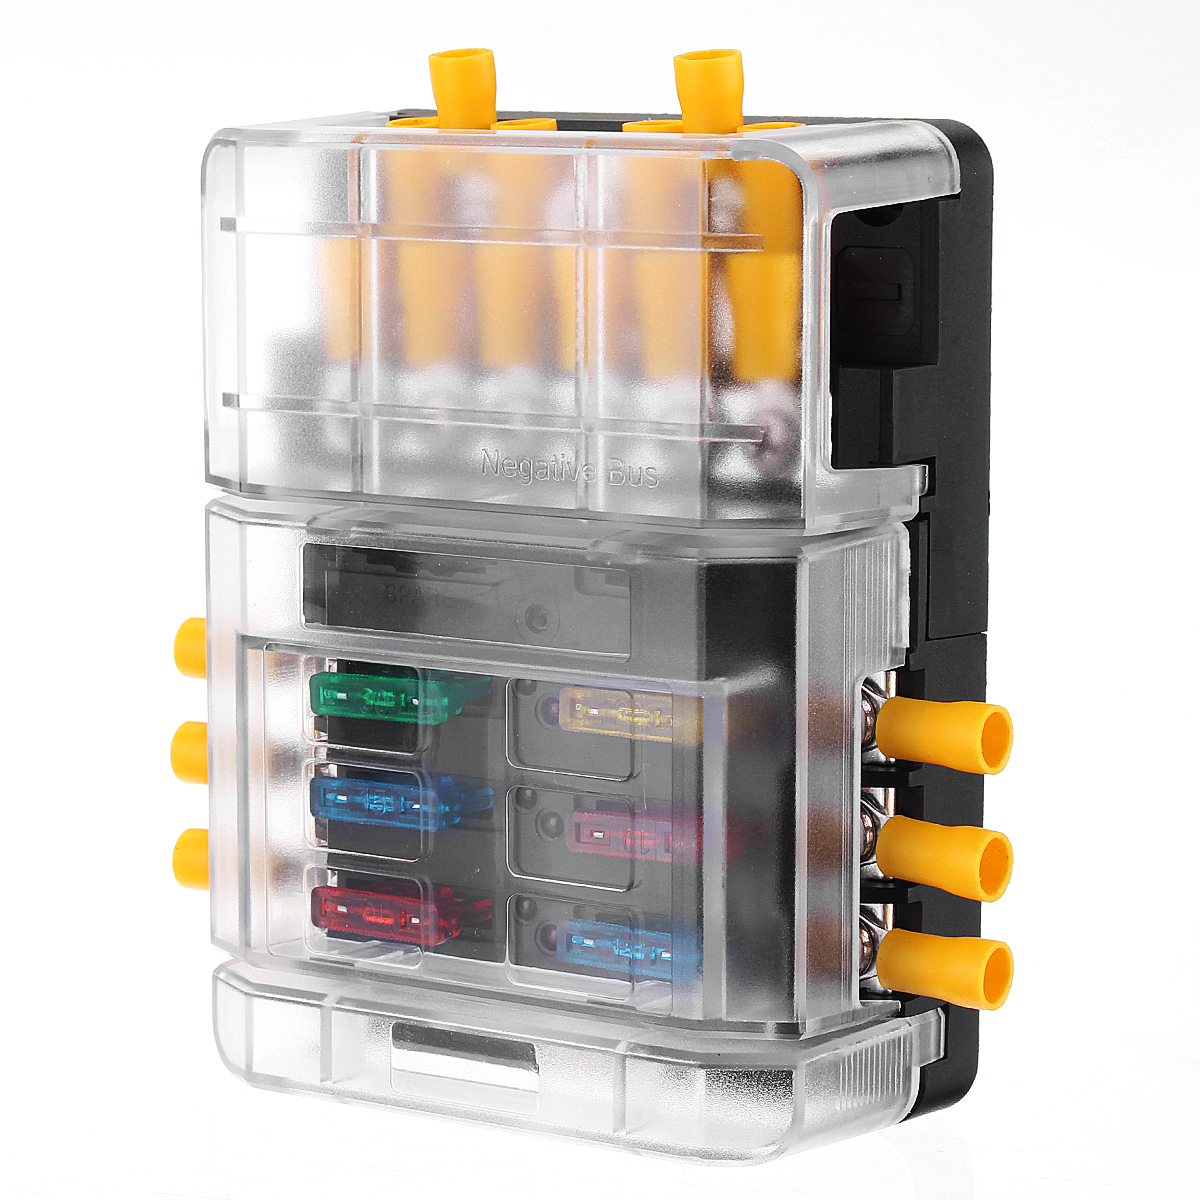 bus fuse box bus bar fuse block 6 way circuit blade fuse box block holder bus bar fuse box fuse block 6 way circuit blade fuse box